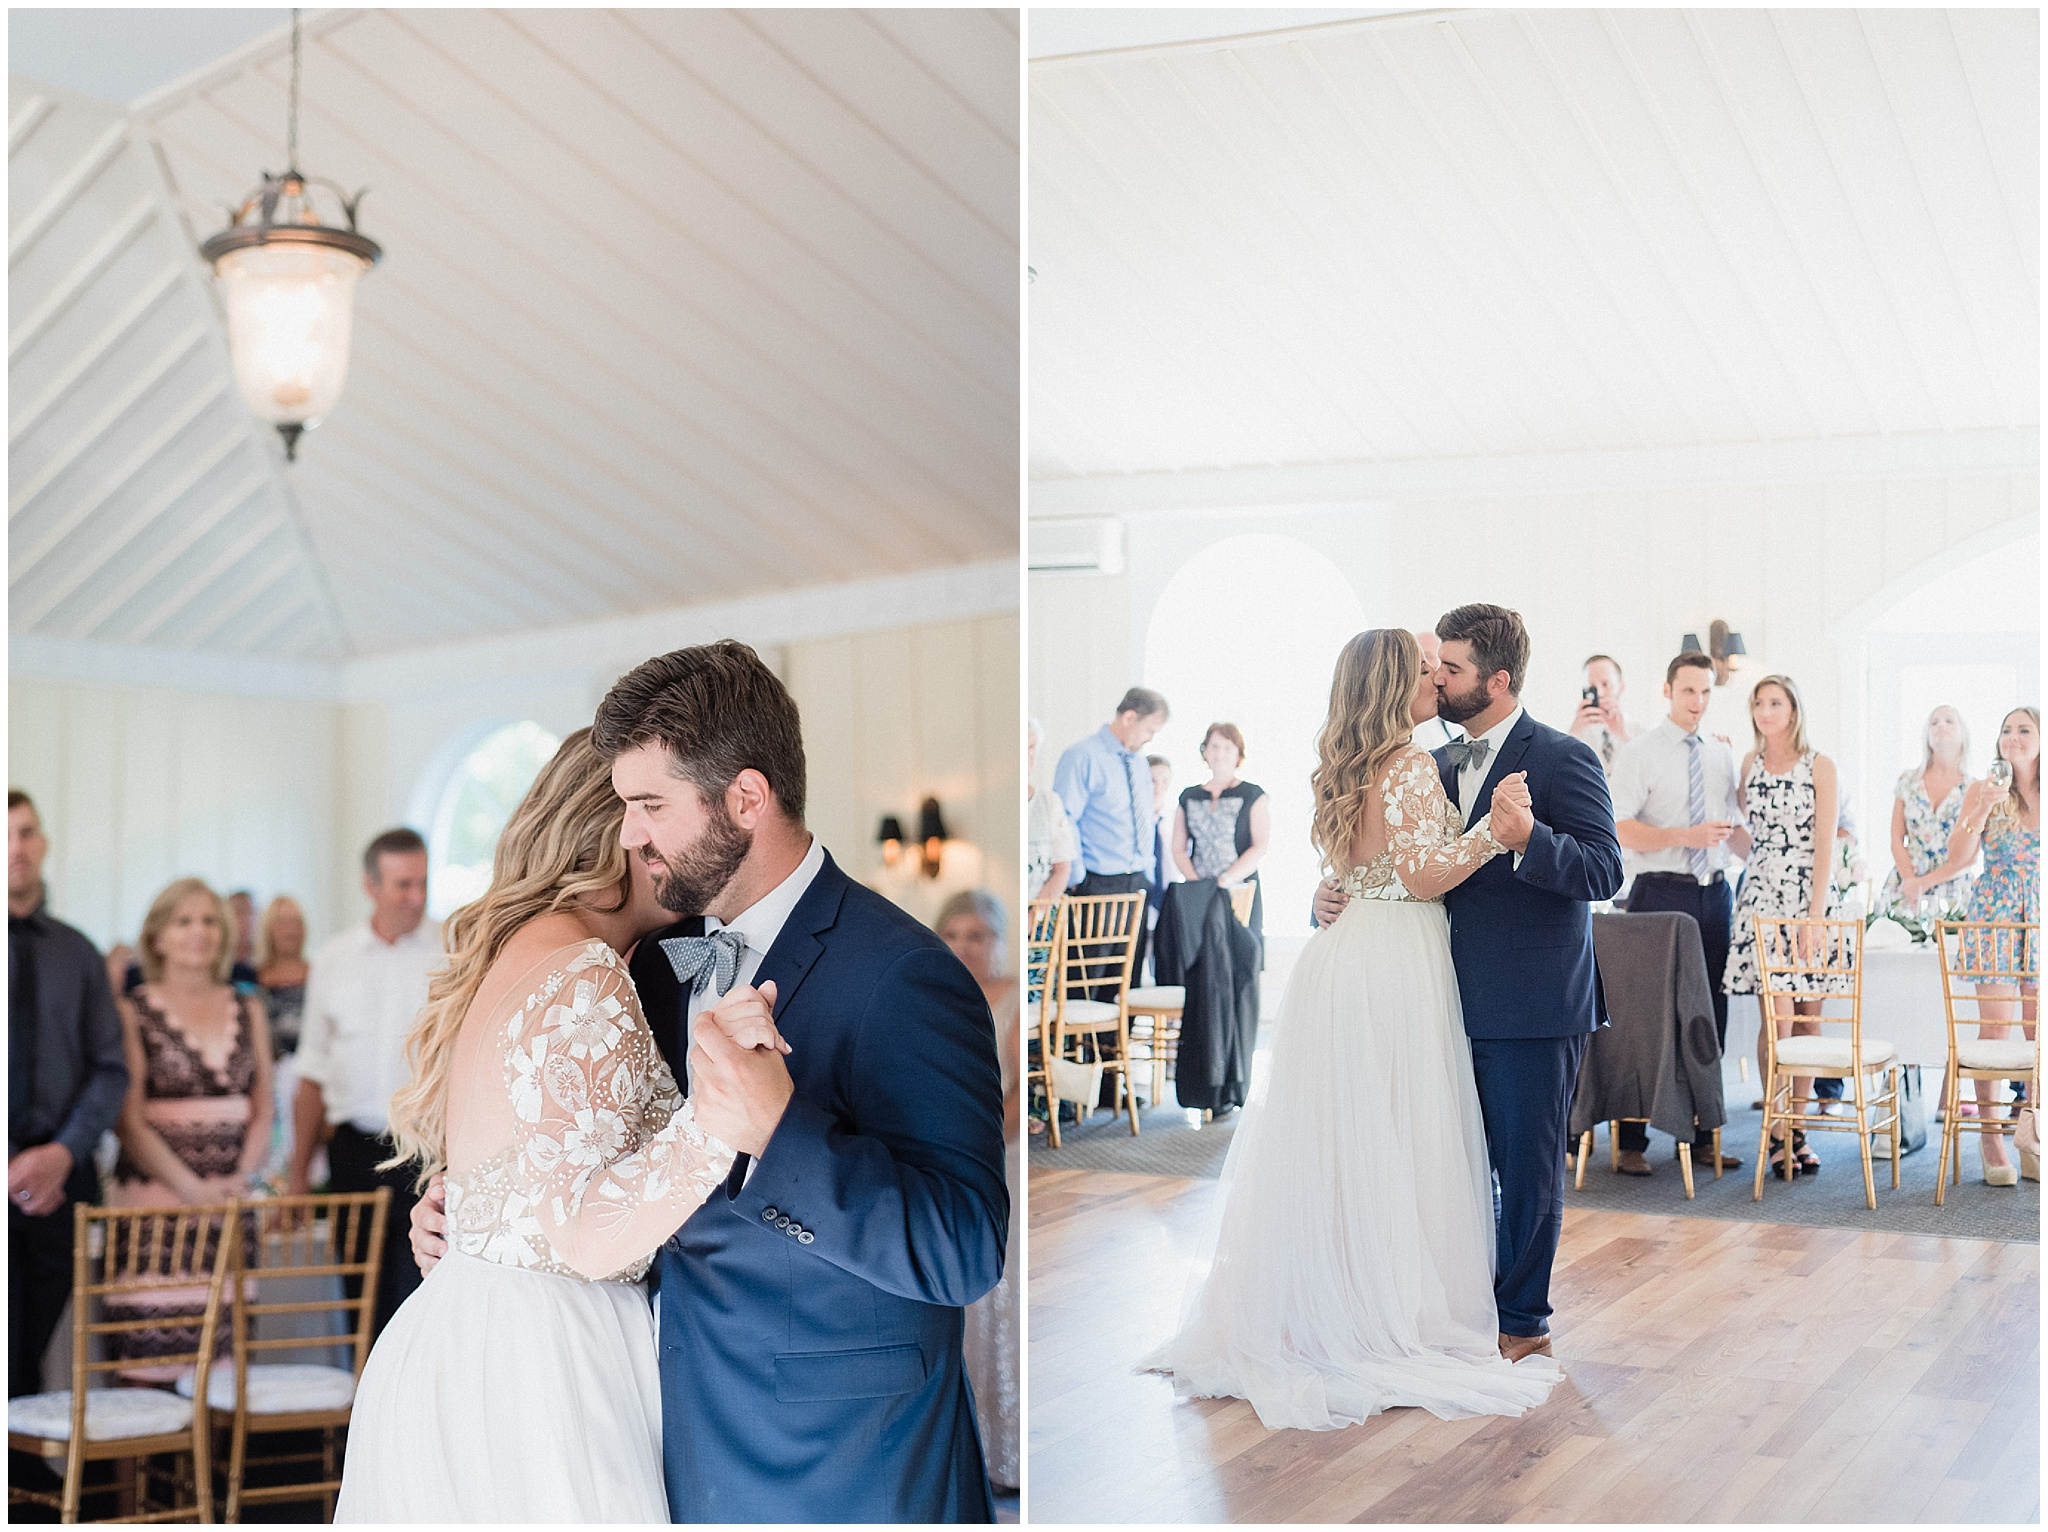 Bride and groom's first dance at Tralee Wedding Facility, photographed by Jenn Kavanagh Photography